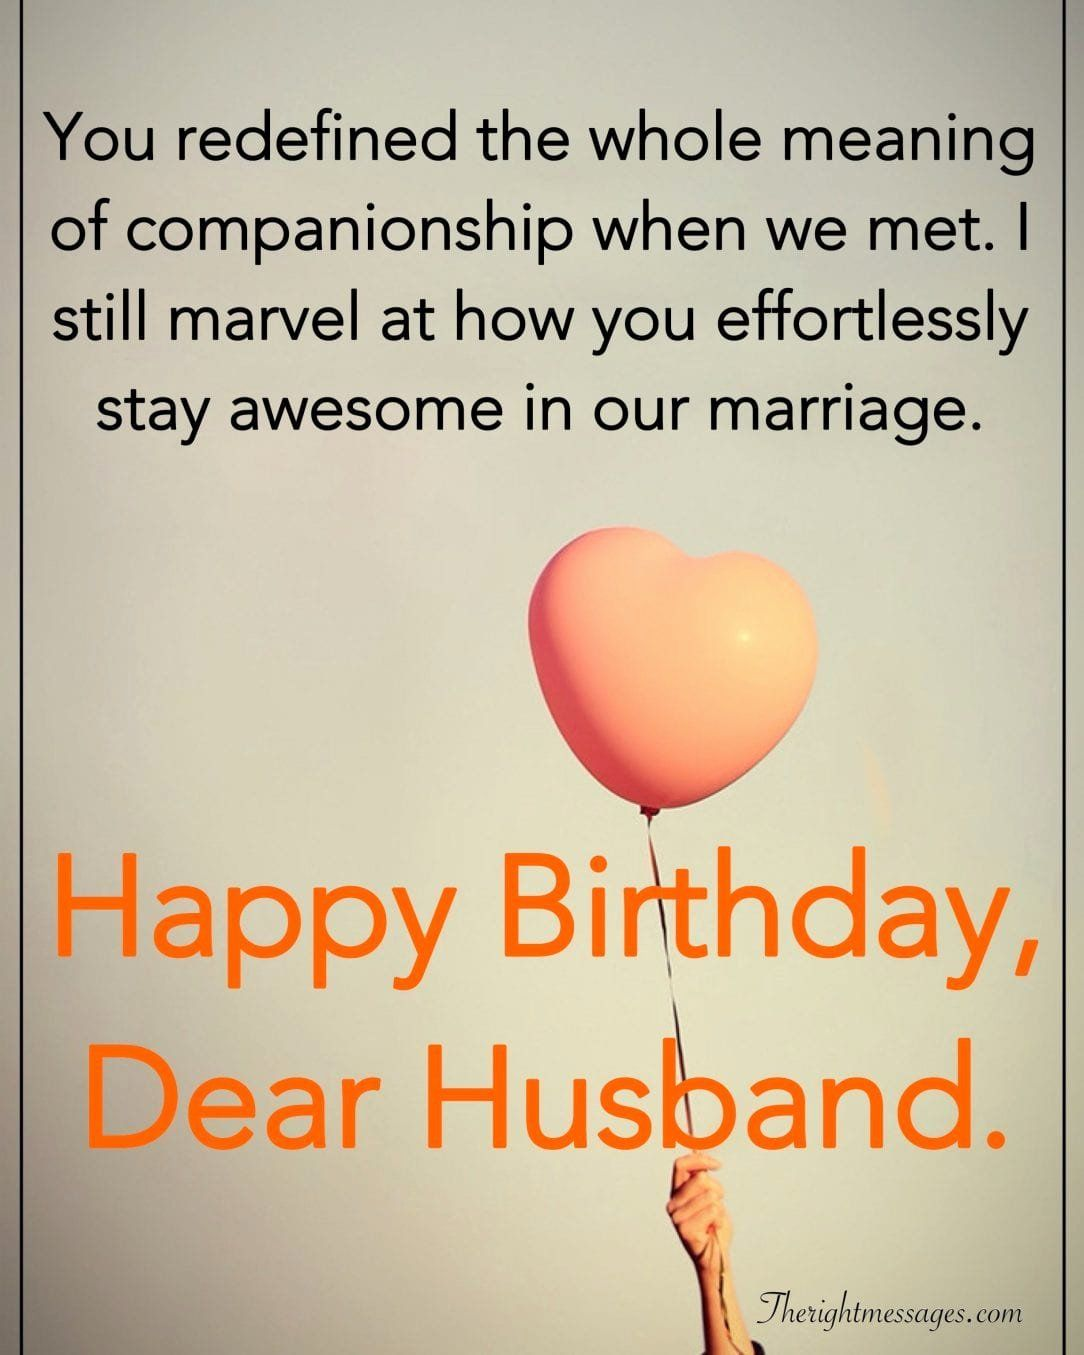 Funny Birthday Wishes Pictures Elegant Funny Birthday Message For Husband Tagalog Birthday Wish For Husband Happy Birthday Husband Quotes Birthday Wishes Funny